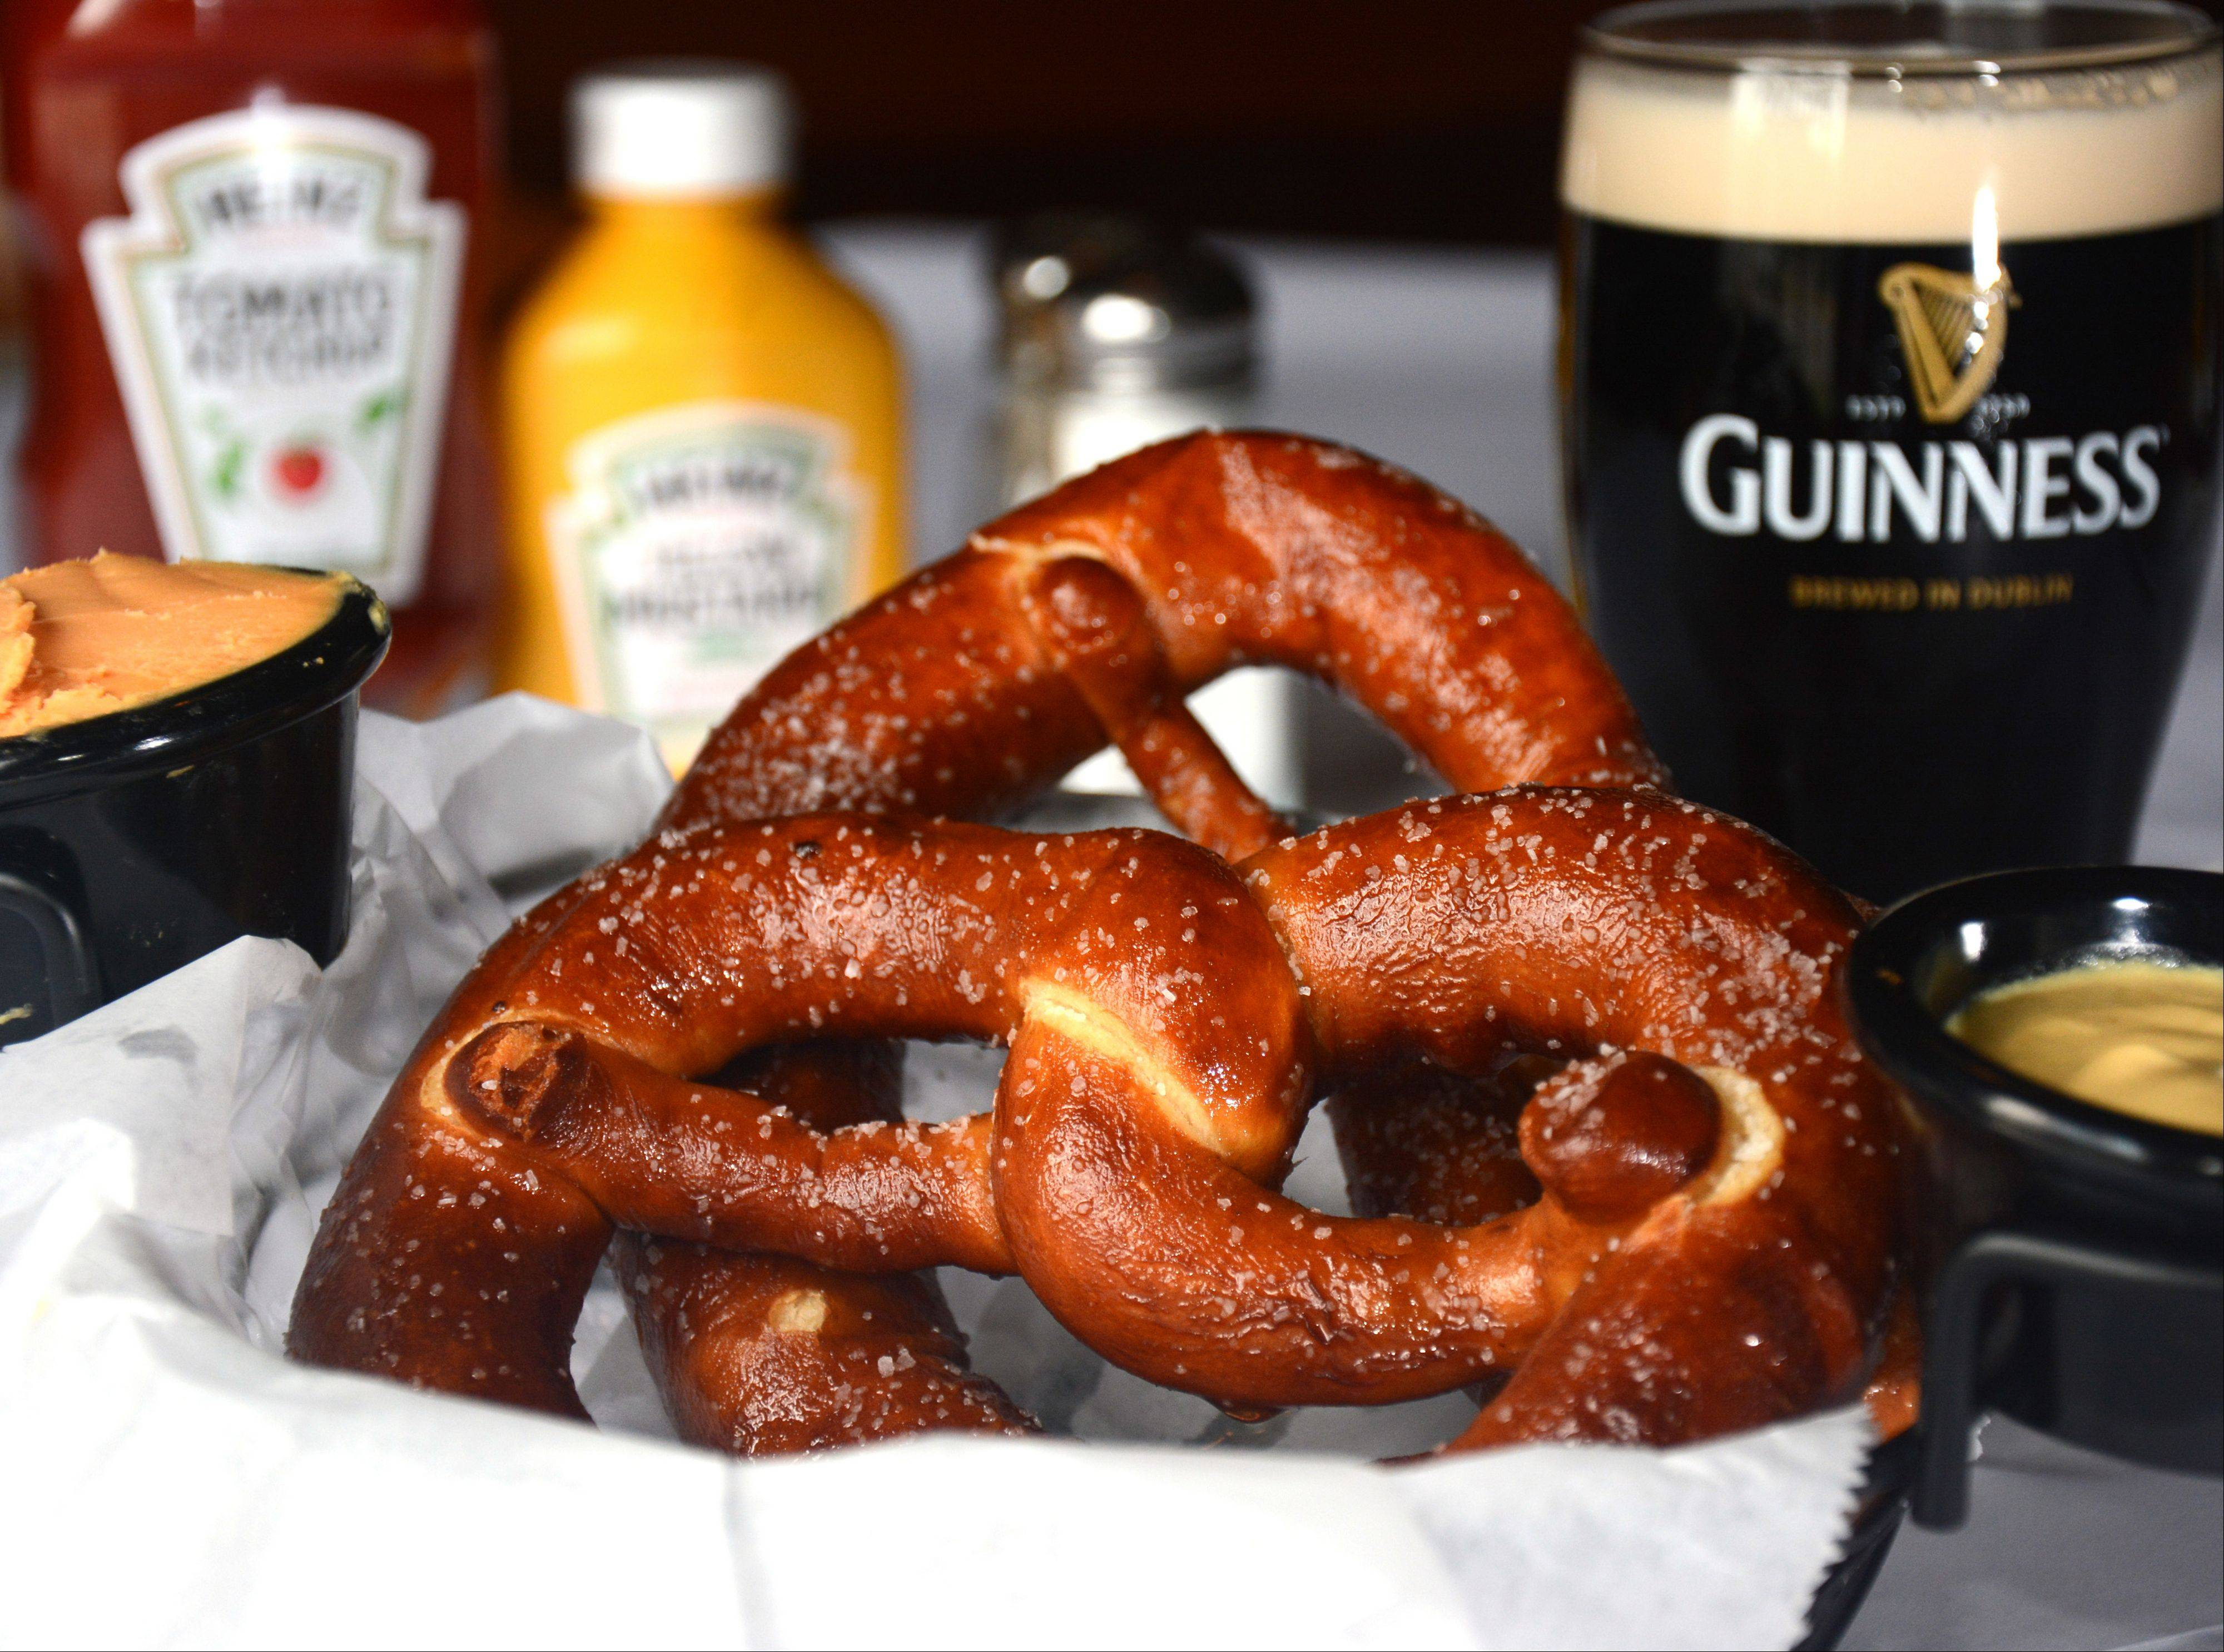 Soft pretzels are a new addition to the appetizer menu at Brandt's in Palatine.